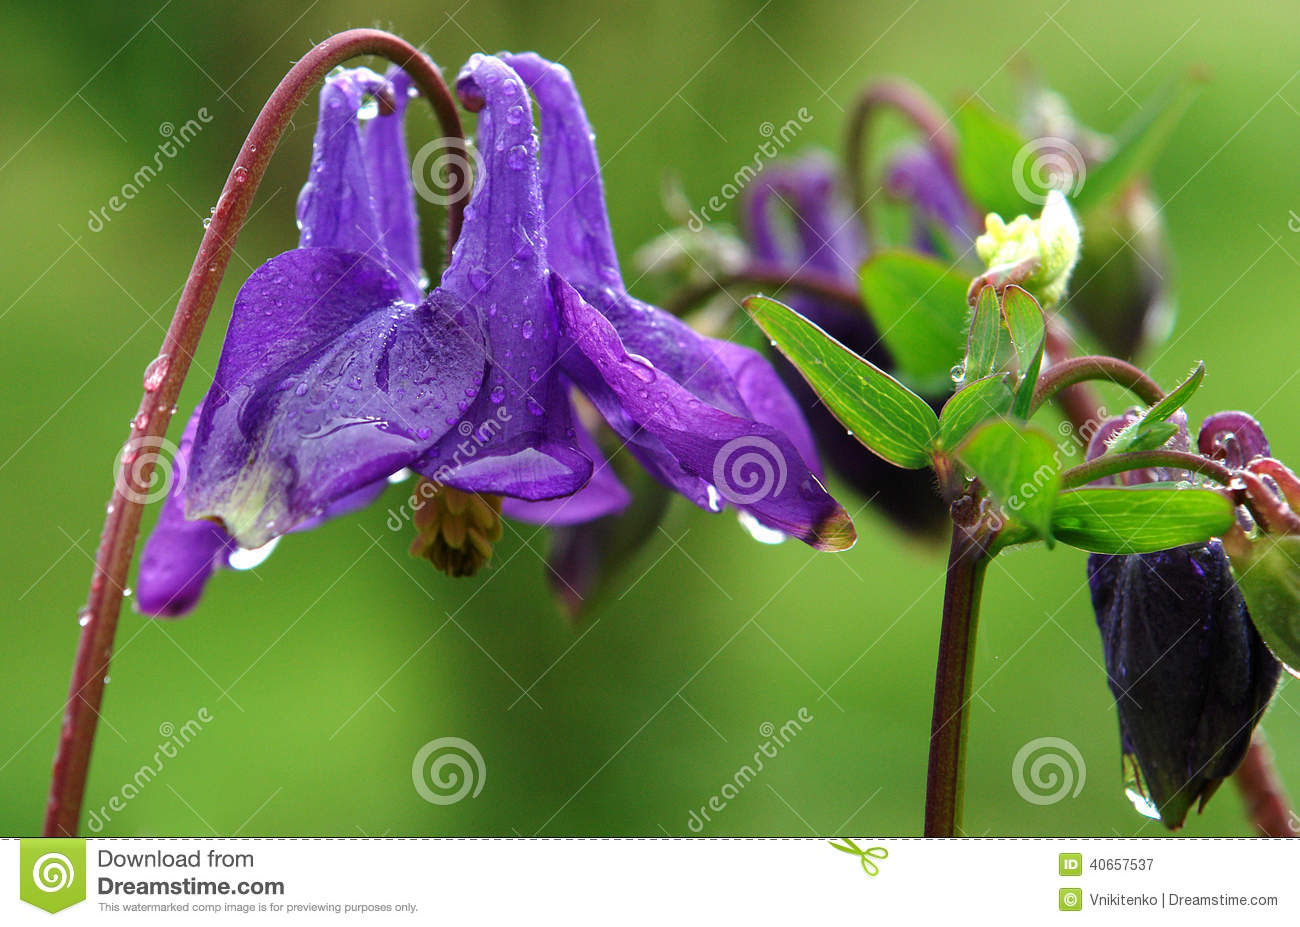 Blue columbine flower stock image image of state rain 40657537 download blue columbine flower stock image image of state rain 40657537 izmirmasajfo